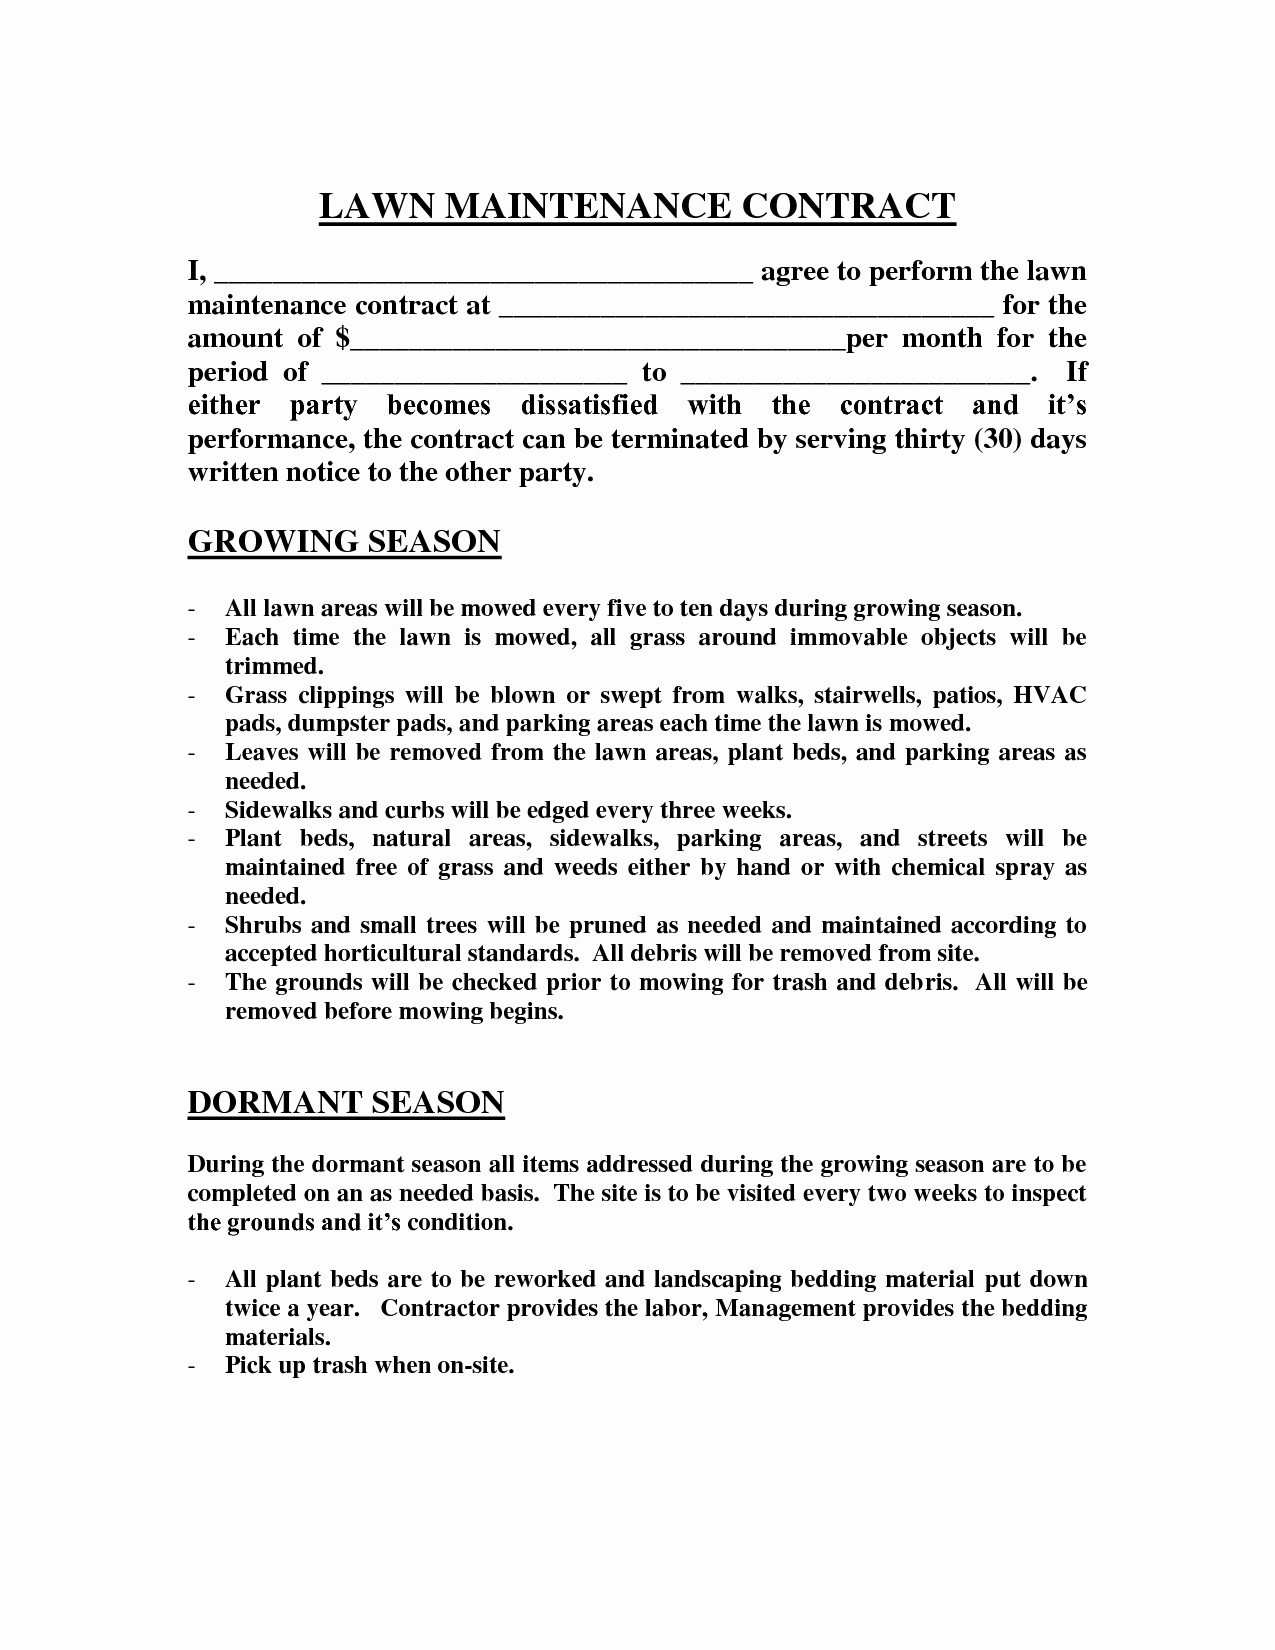 Lawn Care Contract Template Fresh Contract Lawn Care Contract Template Lawn Care Contract